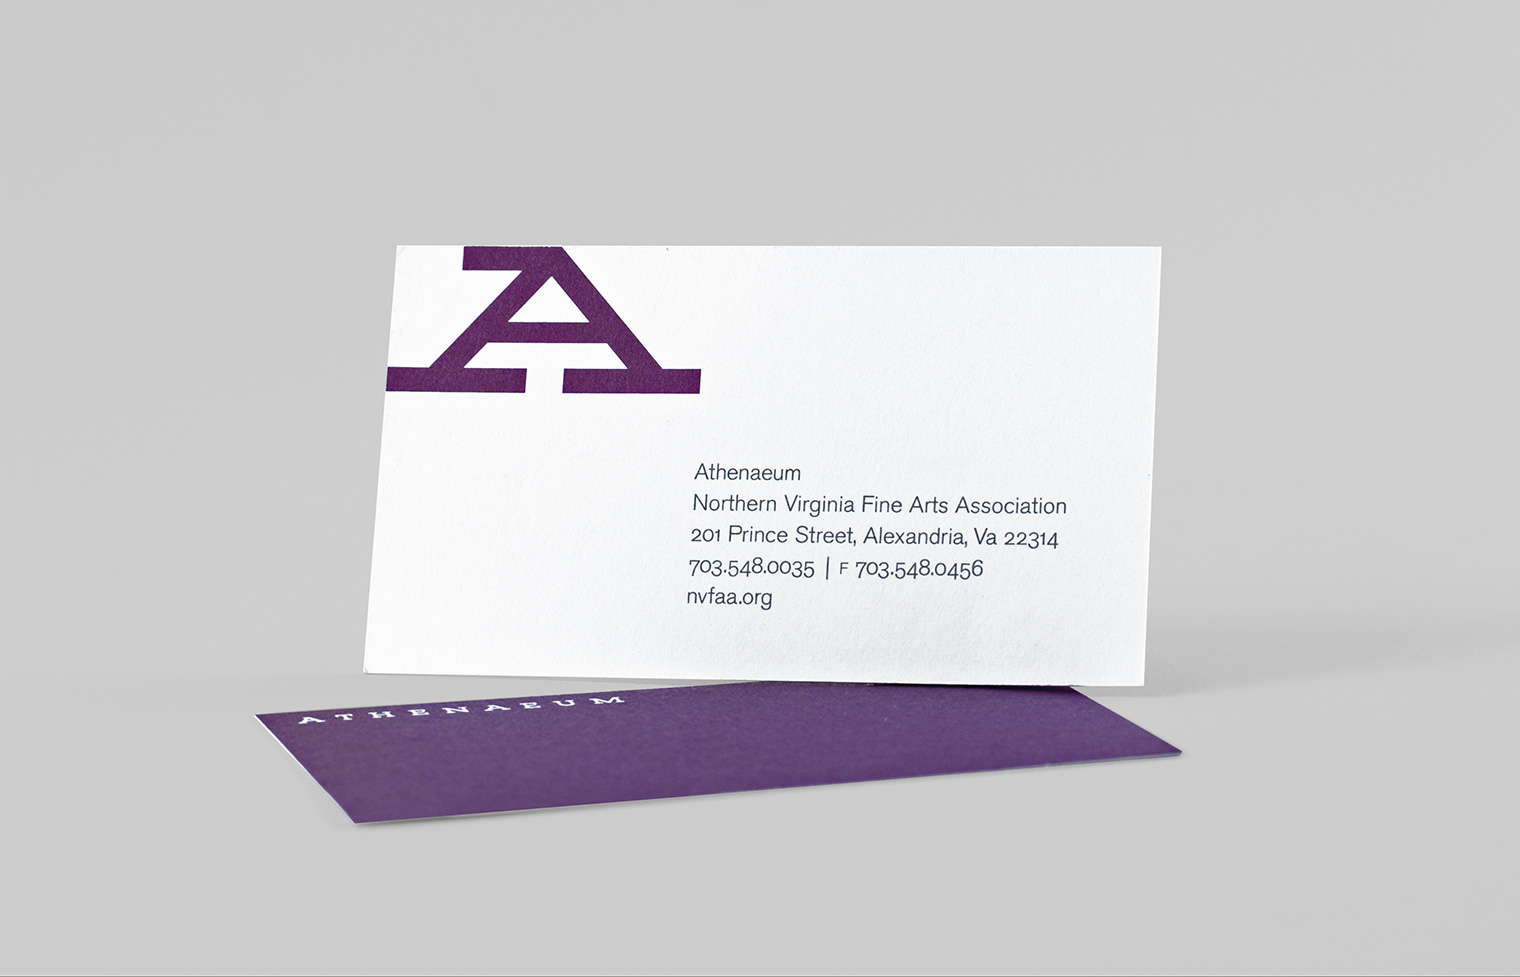 Business card featuring the visual identity of the Athenaeum for the Northern Virginia Fine Arts Association